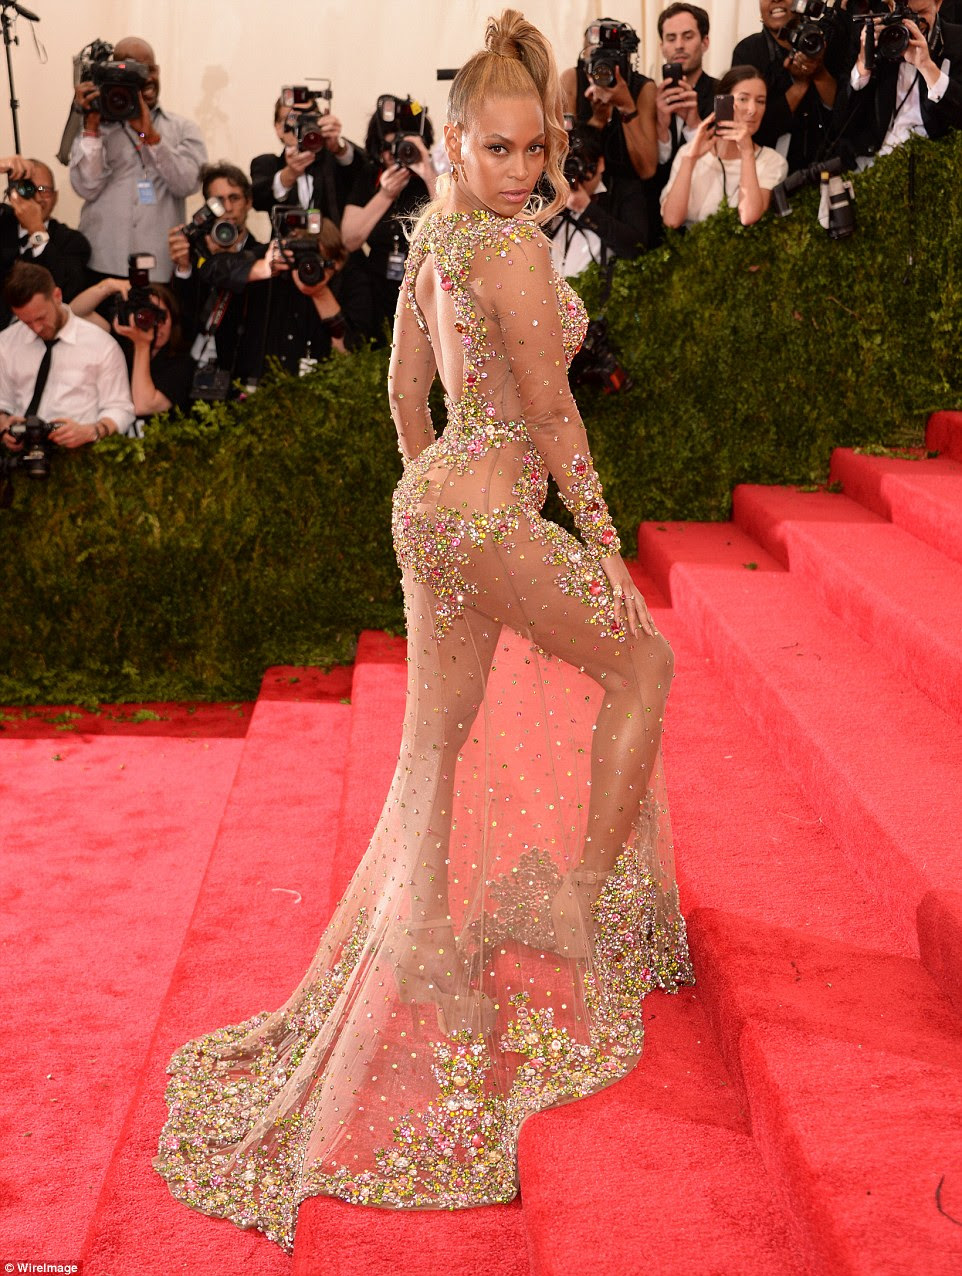 Stealing the show! Beyonce donned a sheer embellished Givenchy dress that strategically covered her assets when she attended the Met Gala in New York City on Monday